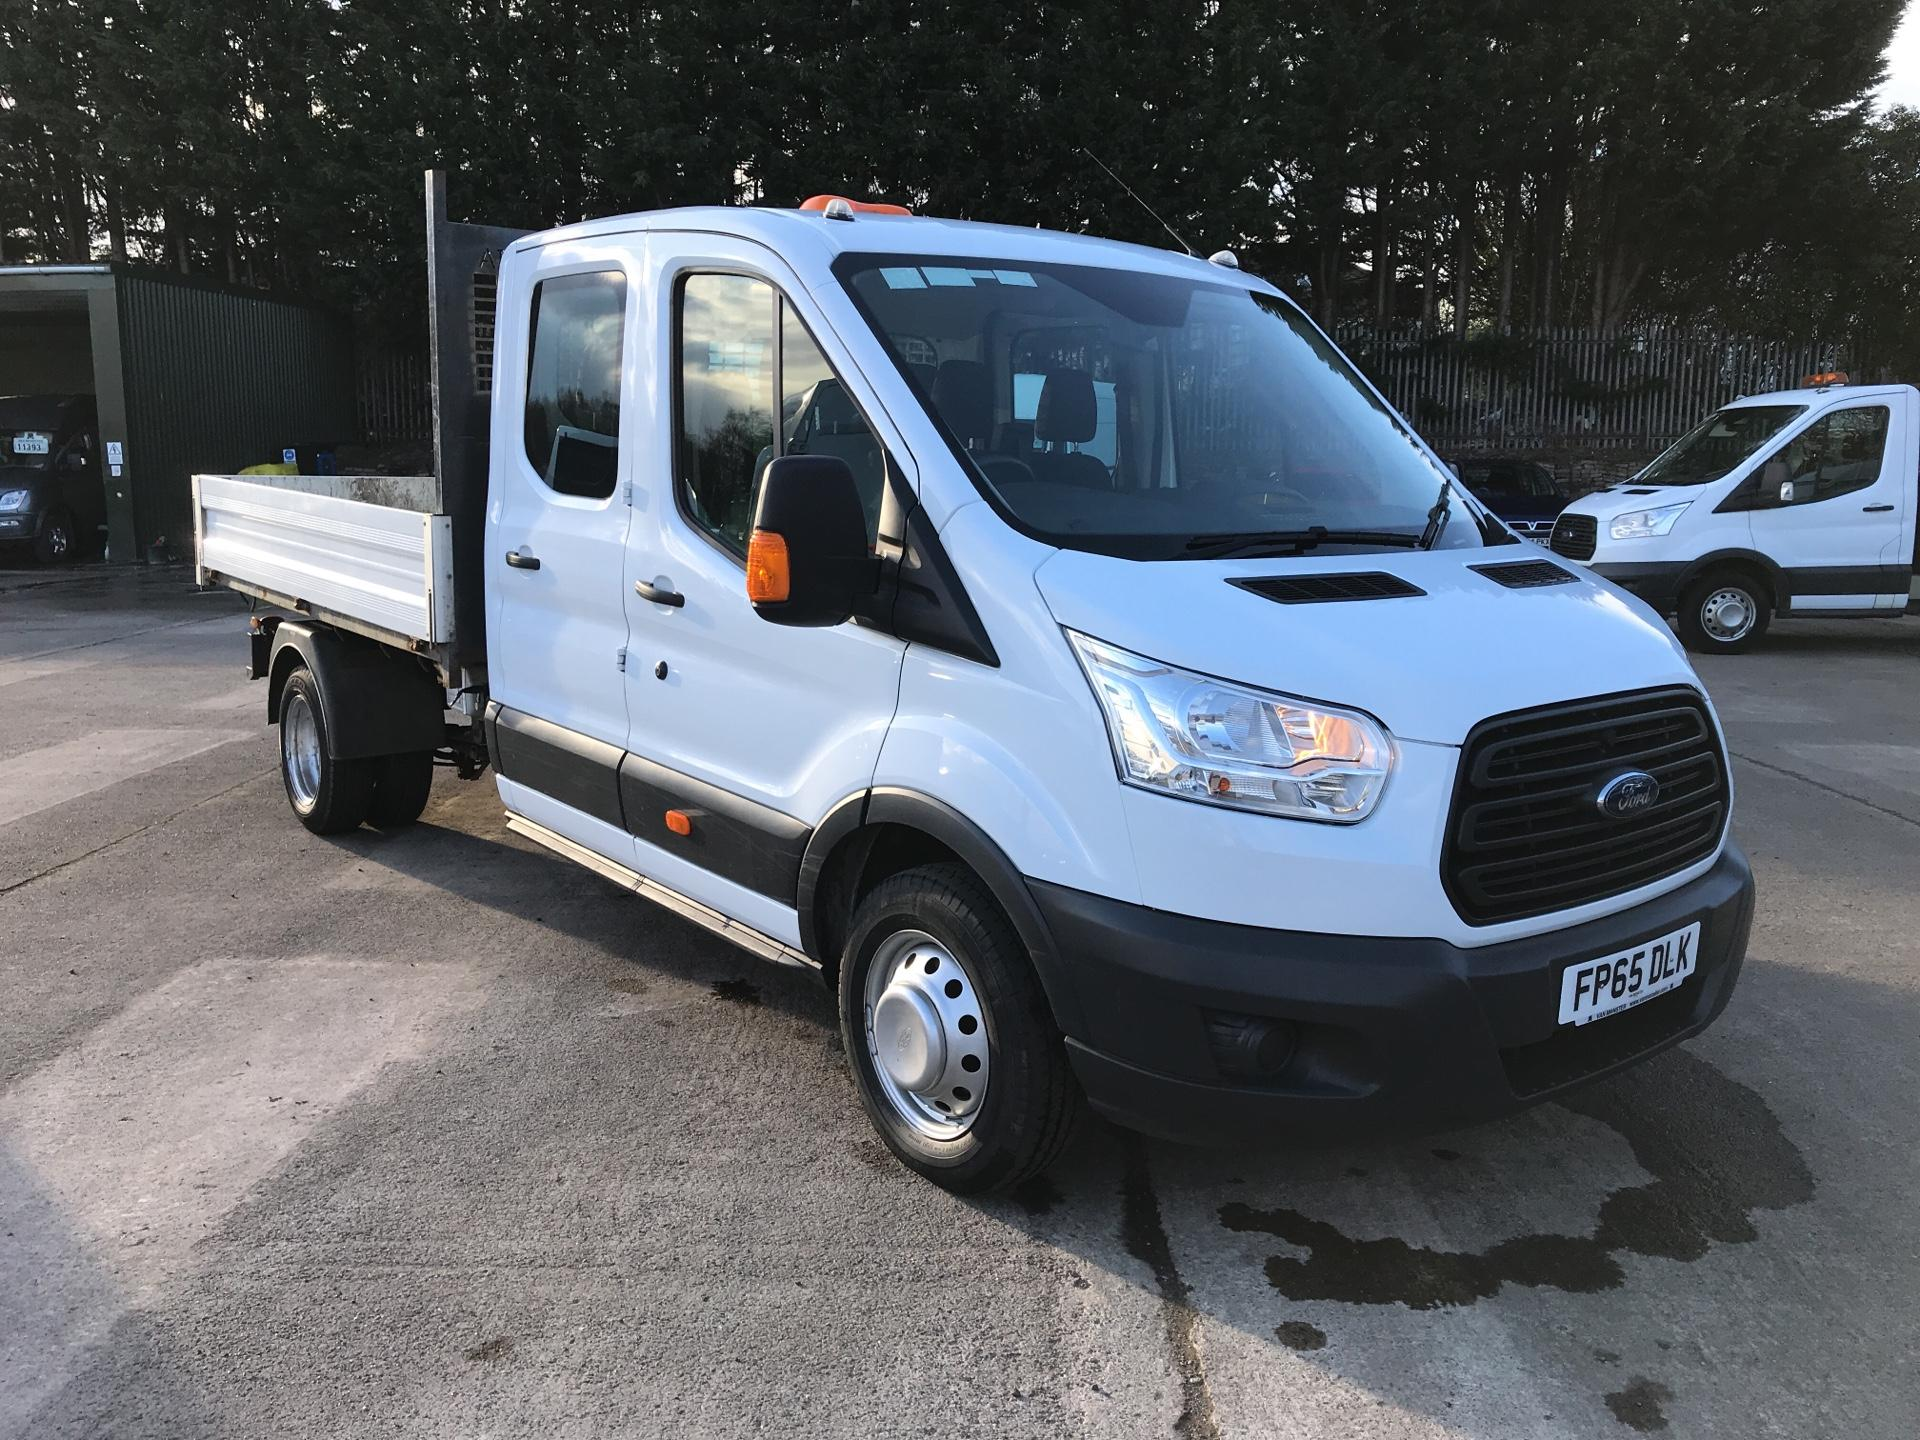 5c712b9a46 2016 Ford Transit 350 L3 DOUBLE CAB TIPPER 125PS EURO 5 (FP65DLK)